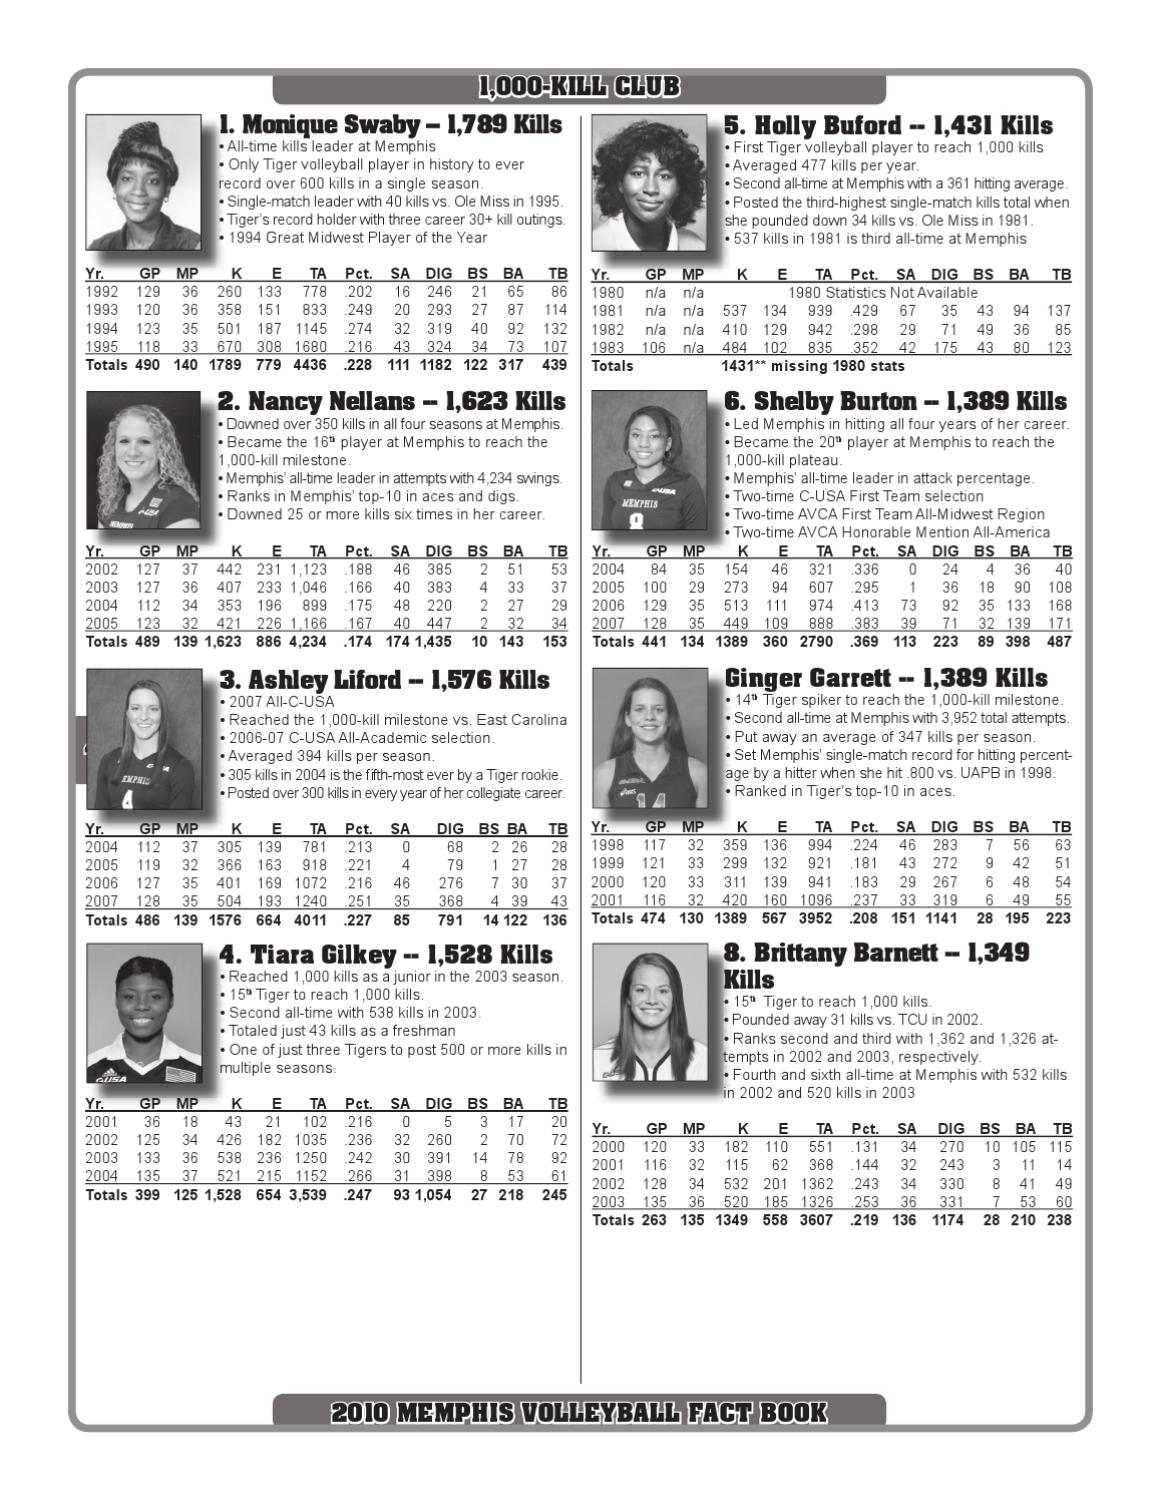 2010 Memphis Volleyball Fact Book by University of Memphis